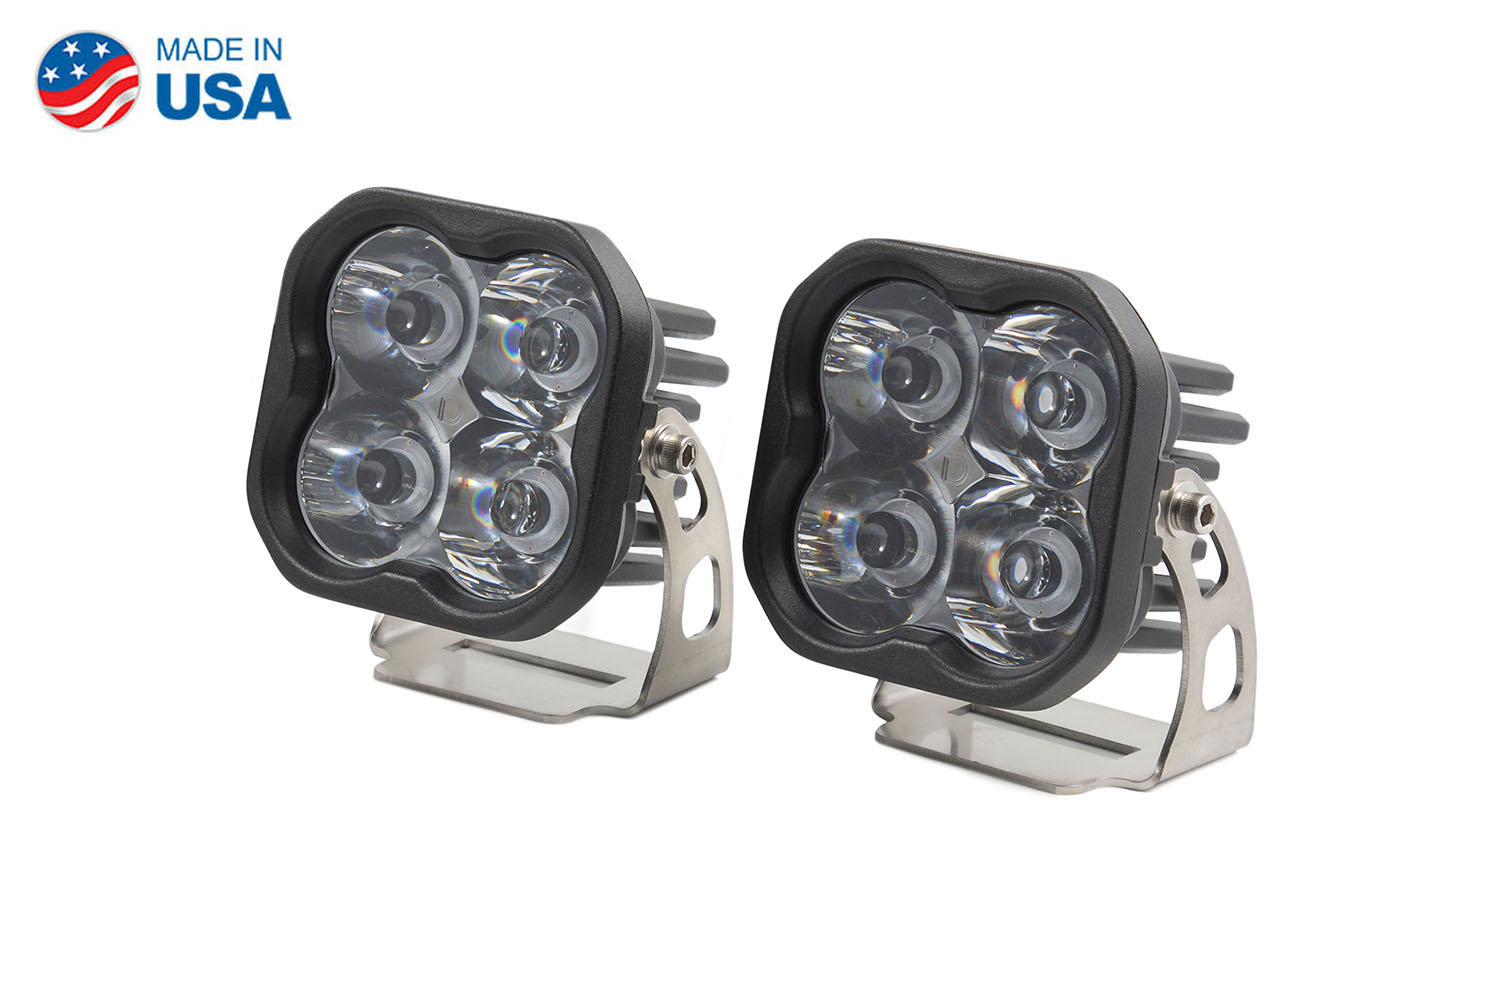 Diode Dynamics Worklight SS3 Pro White Spot Standard (pair)